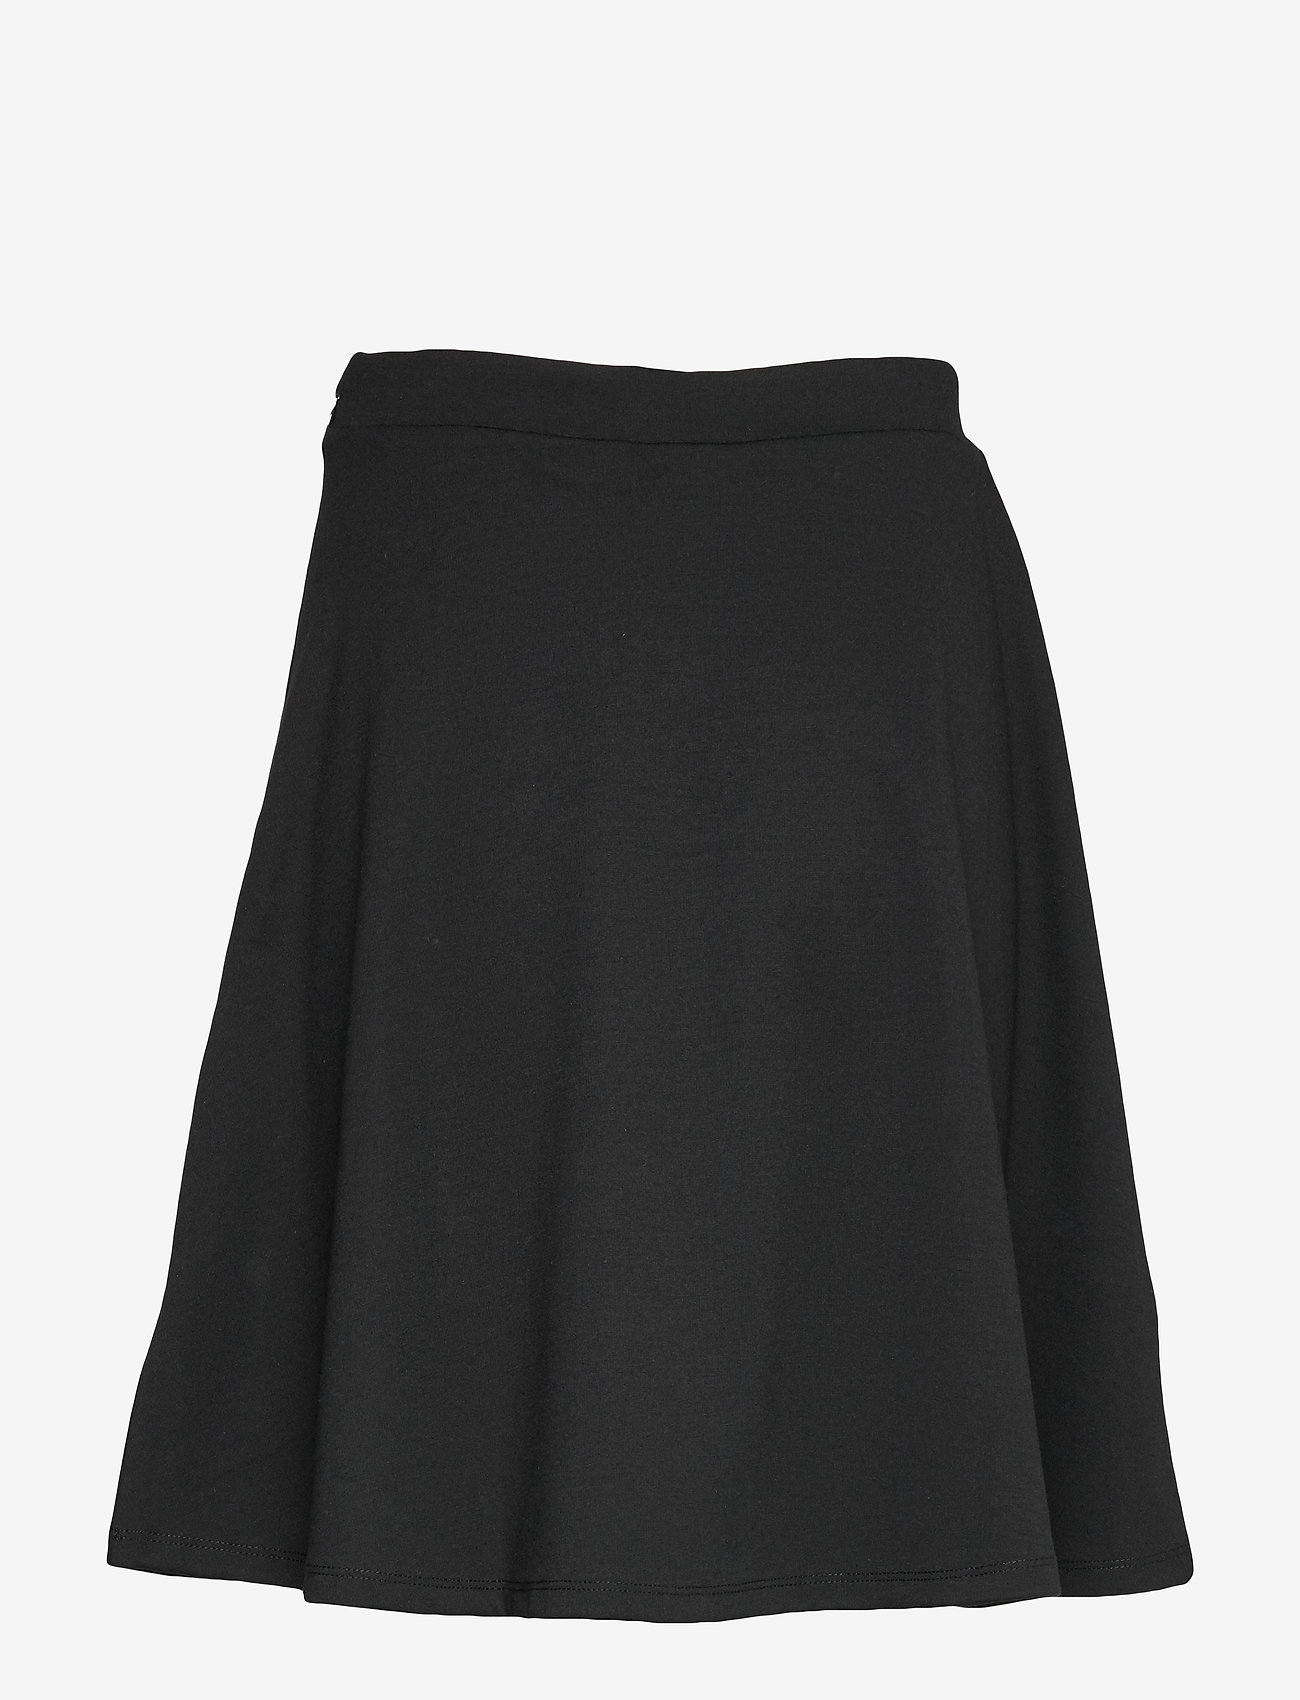 V-f/f Skirt - Ponte (True Black) - GAP g8zYtO